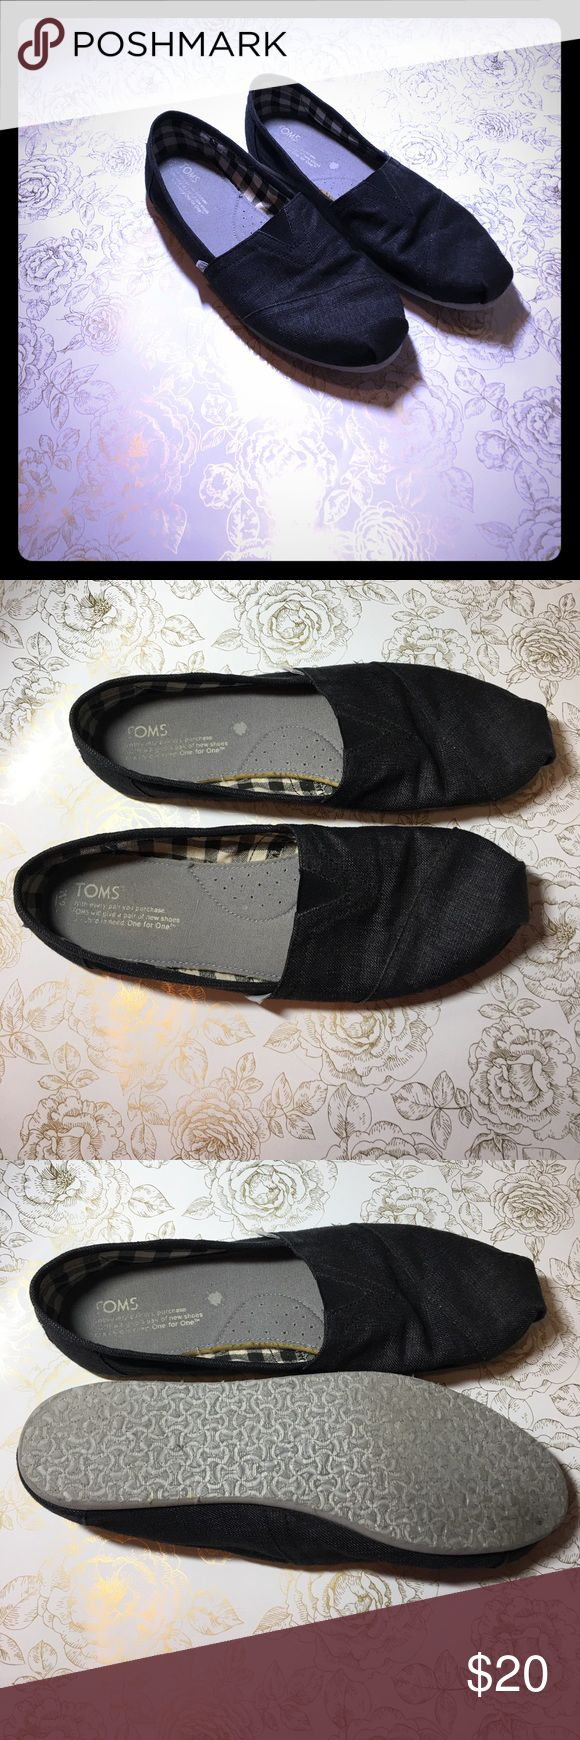 Women's Dark Gray TOMS Women's Dark Gray TOMS. Not sure of the exact size but they fit like a 9.5-10. Worn but still in great condition. TOMS Shoes Flats & Loafers